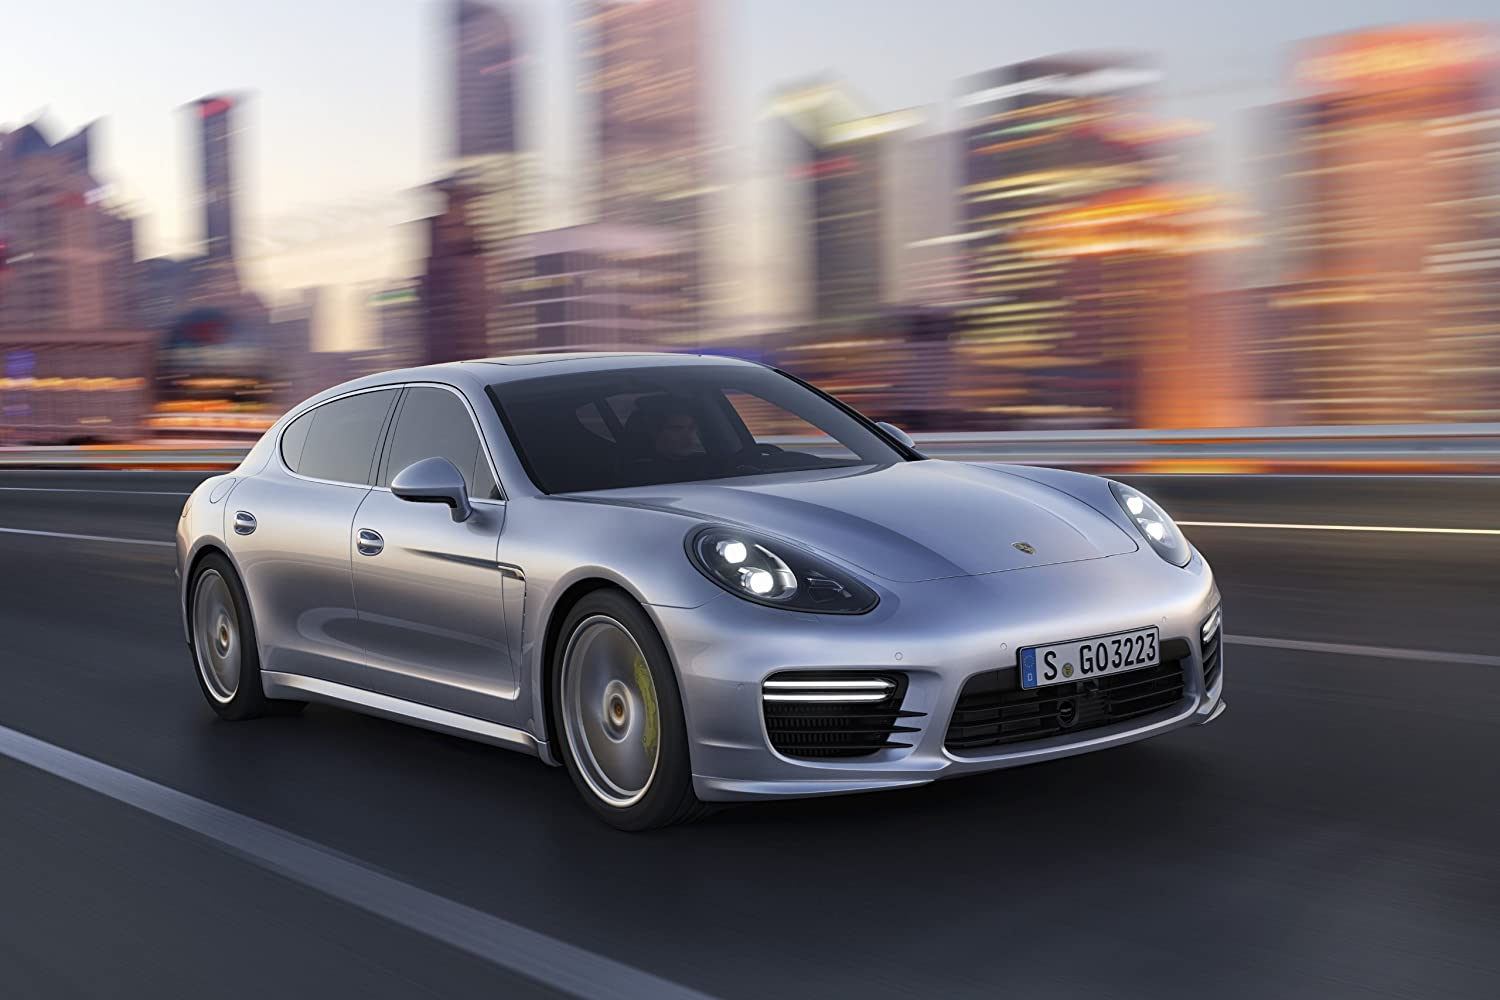 Amazon.com: Porsche Panamera Turbo Executive (2013) Art Car Poster Print on 10 mil Archival Satin Paper Silver Front Side View 16